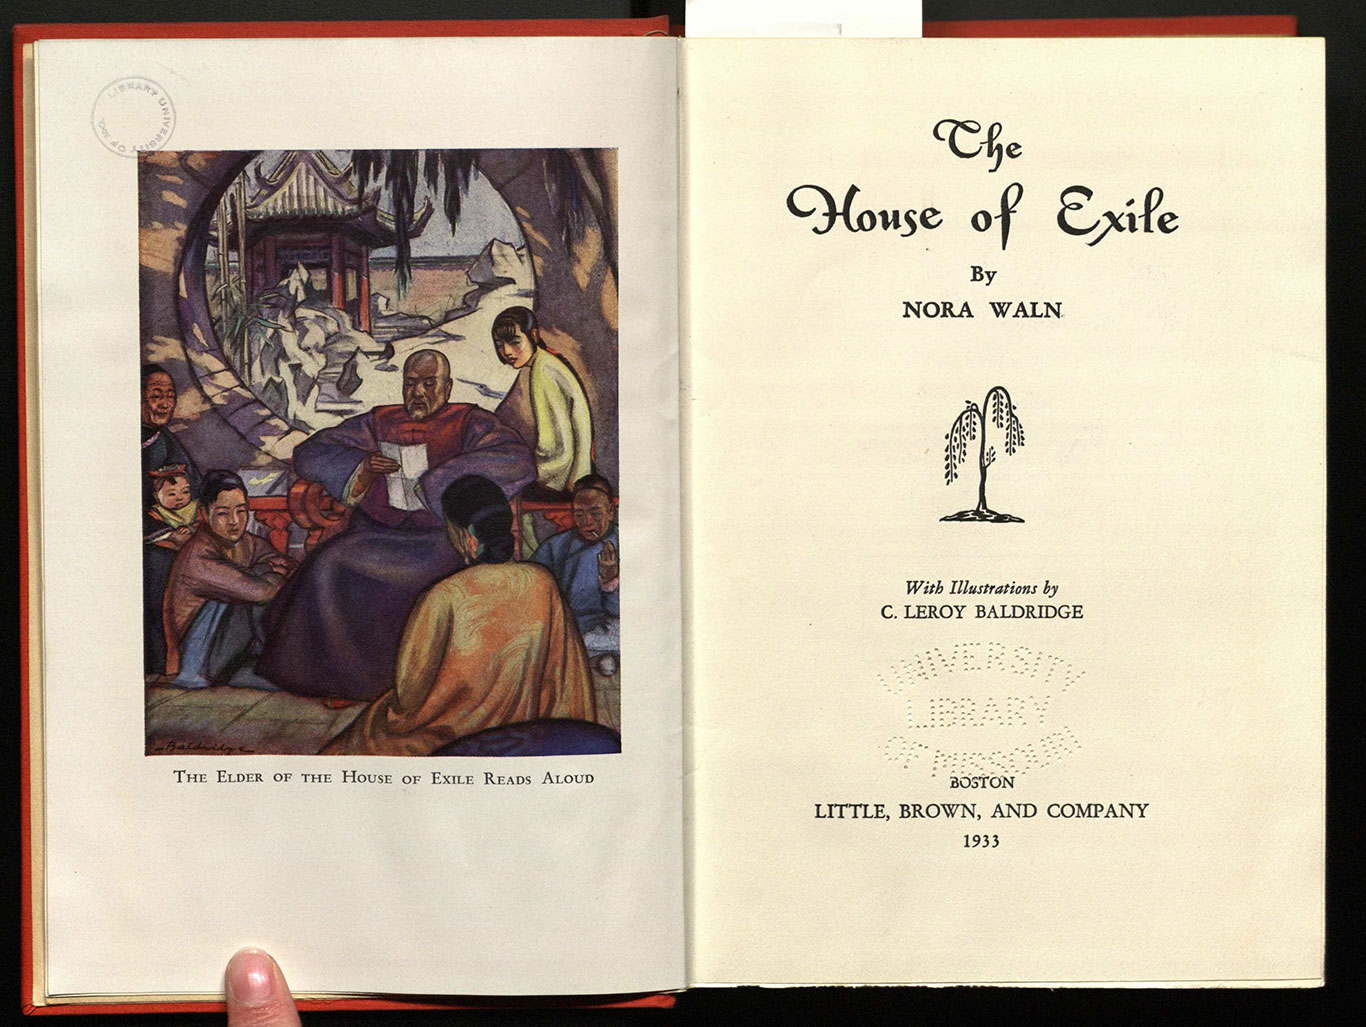 The House of exile / by Nora Waln; with illustrations by C. Le Roy Baldridge.